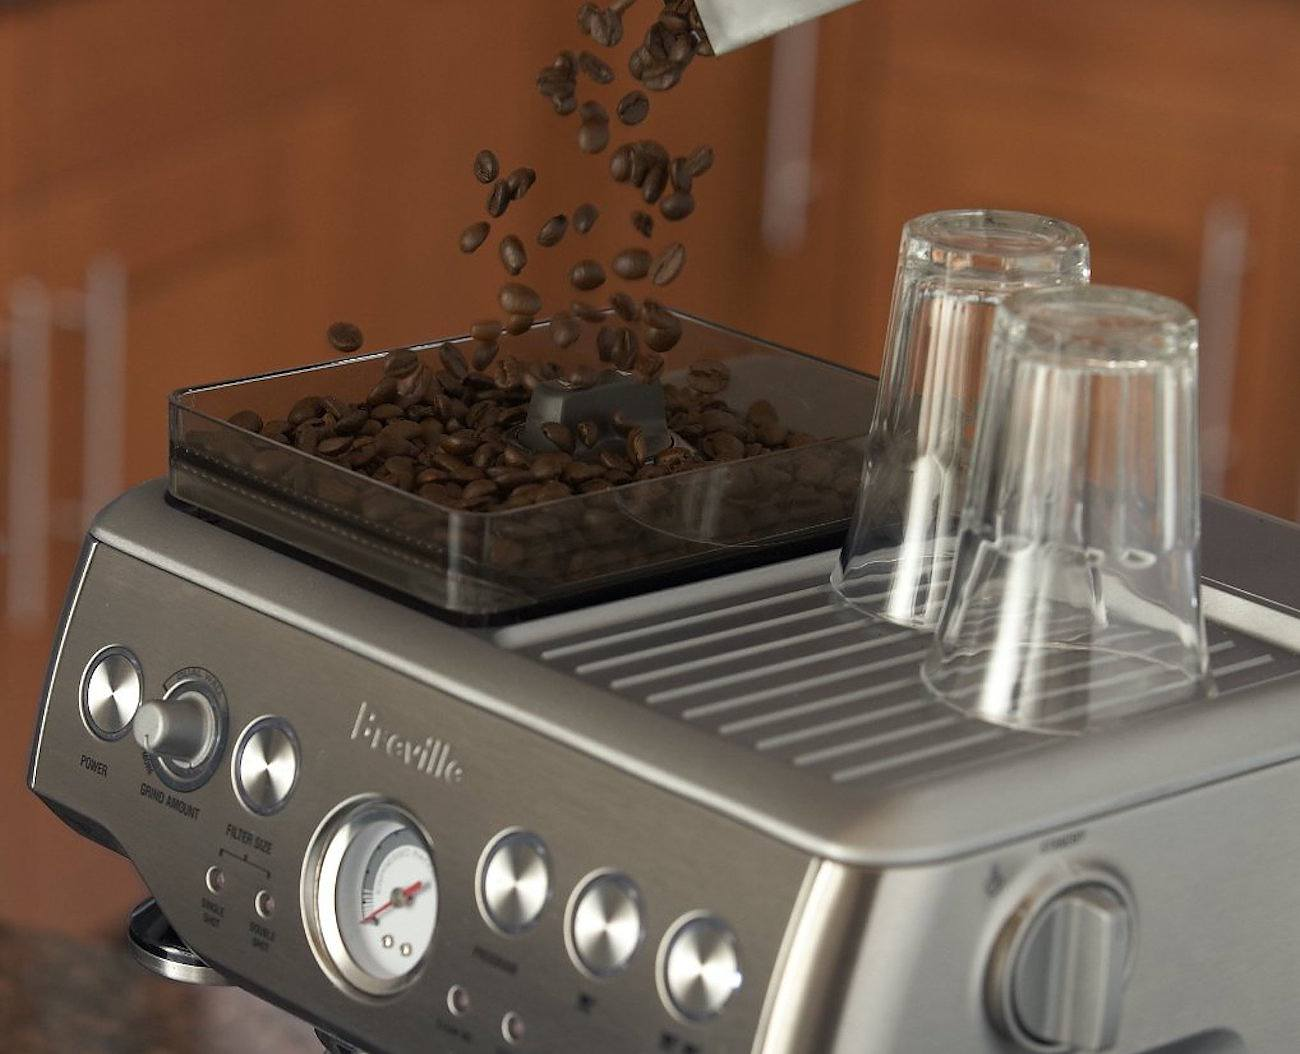 The best affordable espresso machines you can buy in 2019 - Breville Barista Express 1